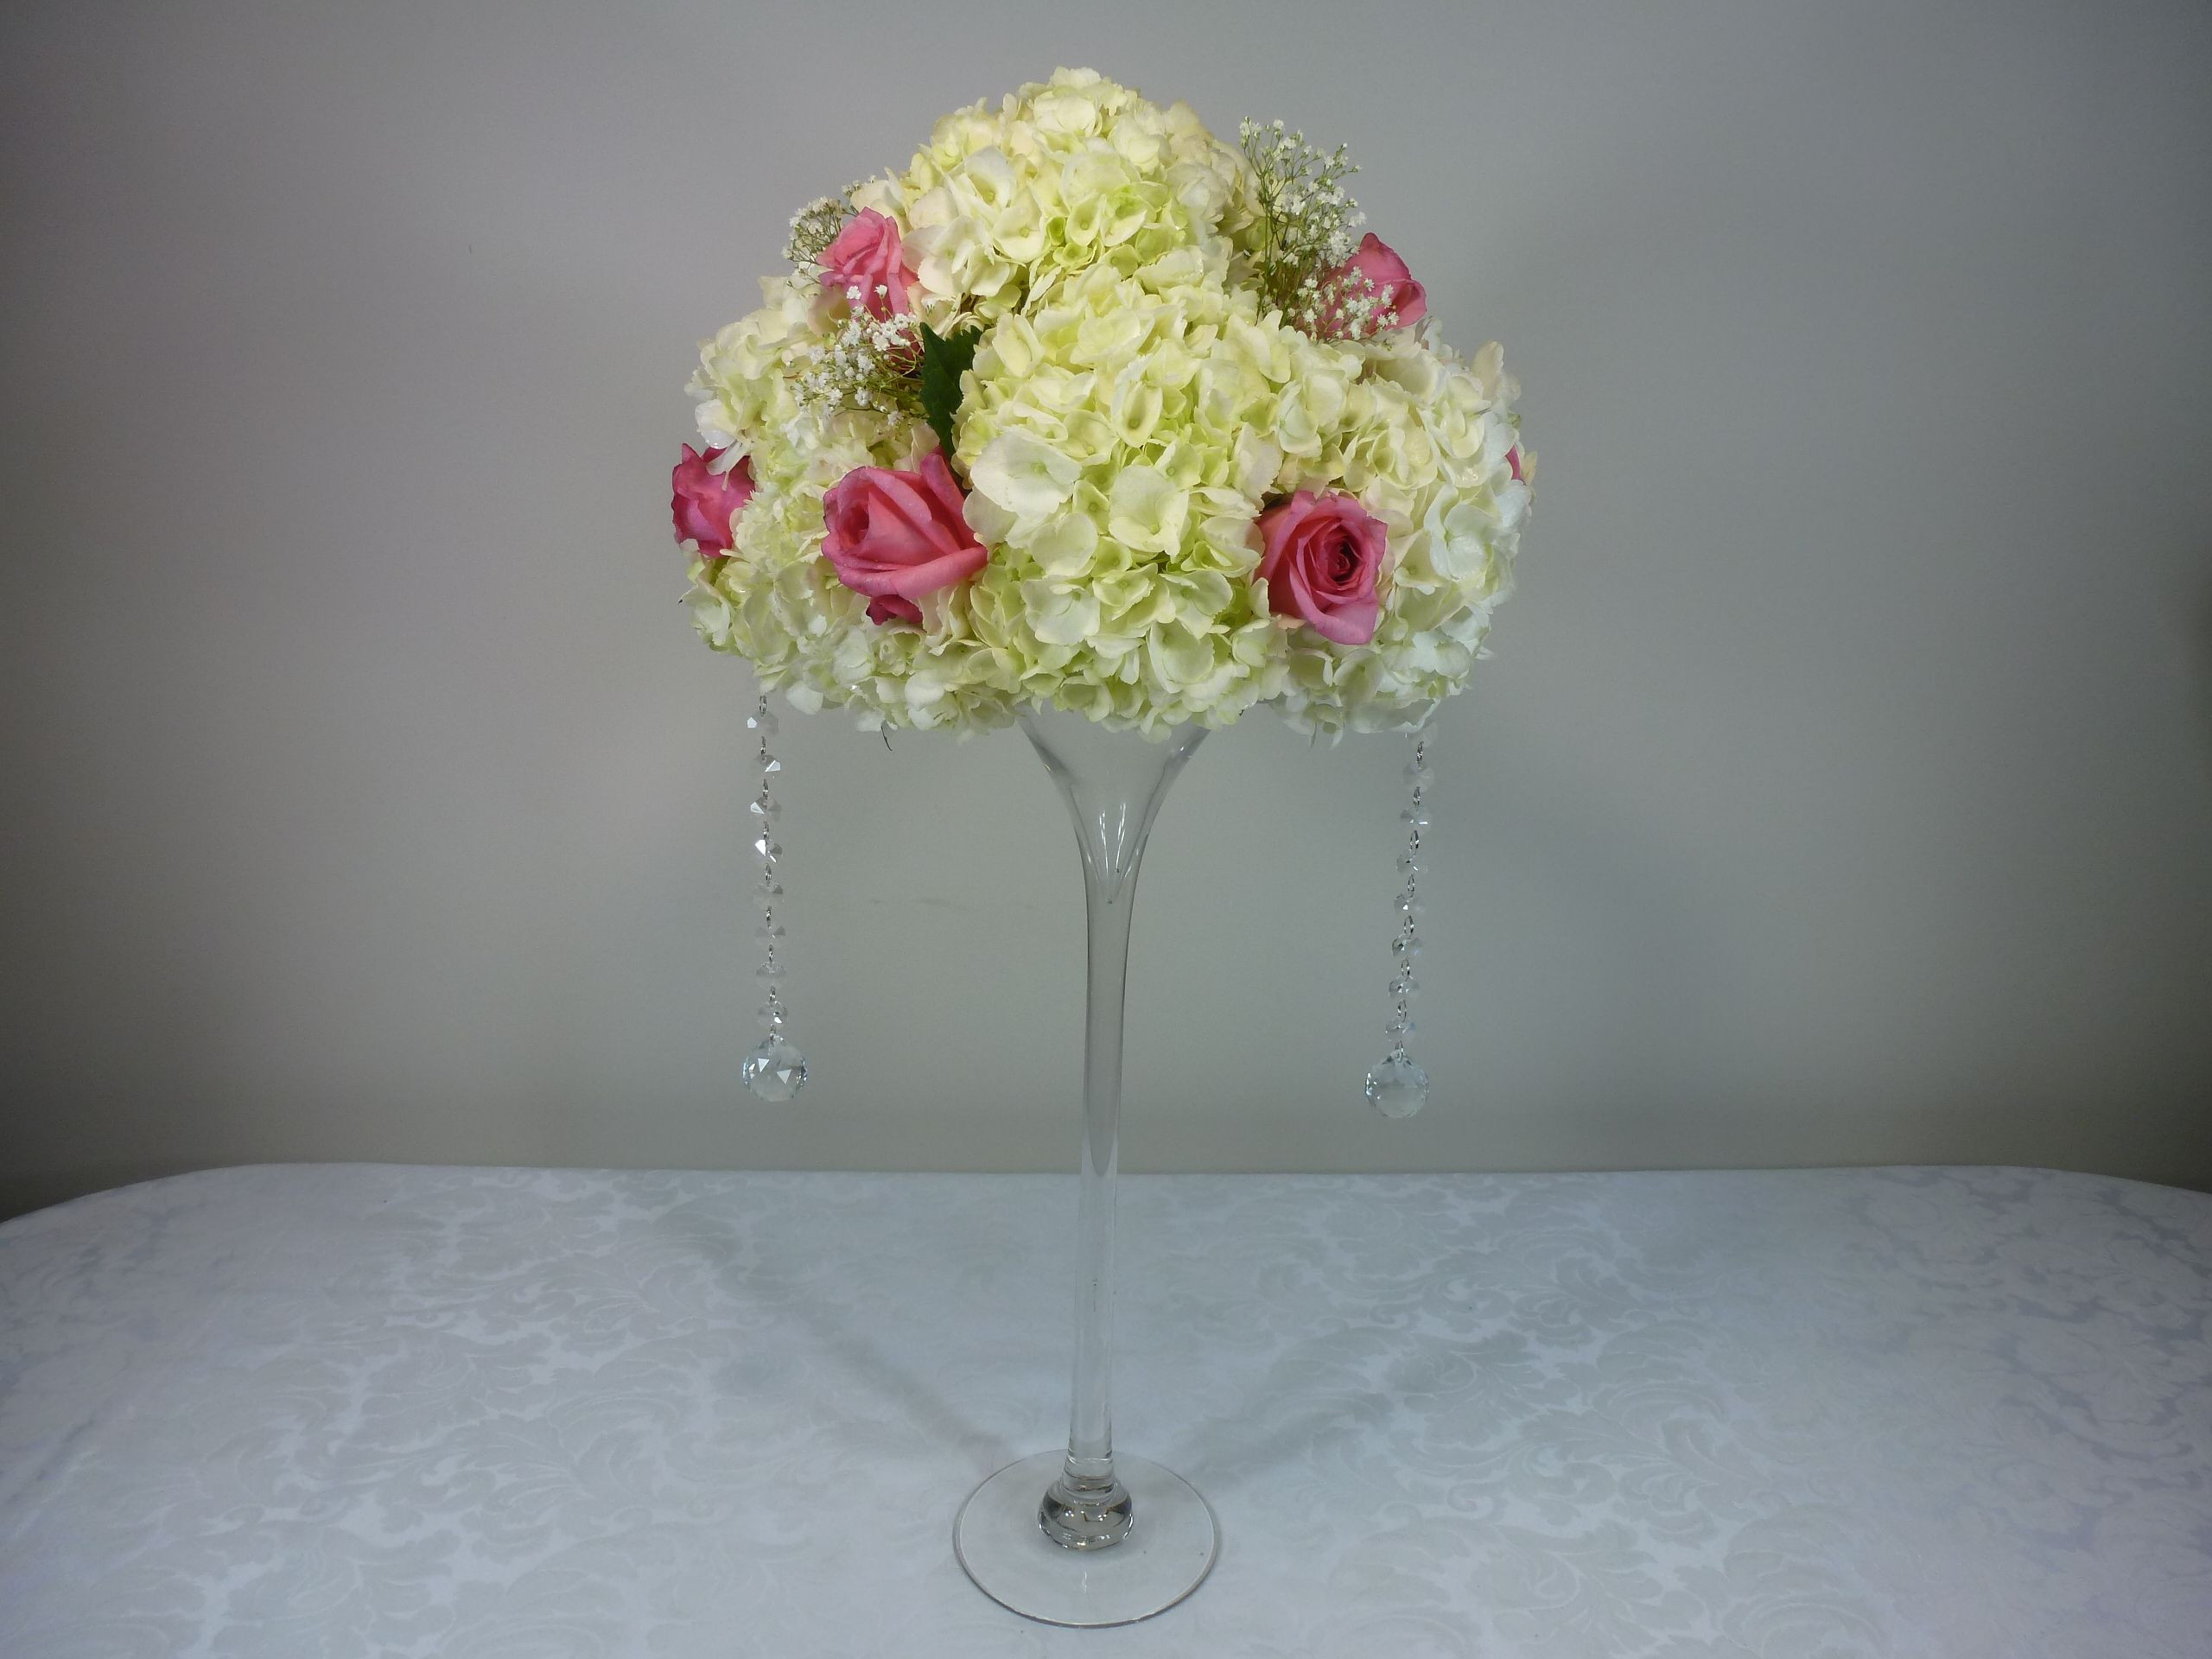 cemetery flower vases wholesale of 45 how to make silk flower arrangements for cemetery vases the intended for martini vase wedding centerpieces vase and cellar image avorcor